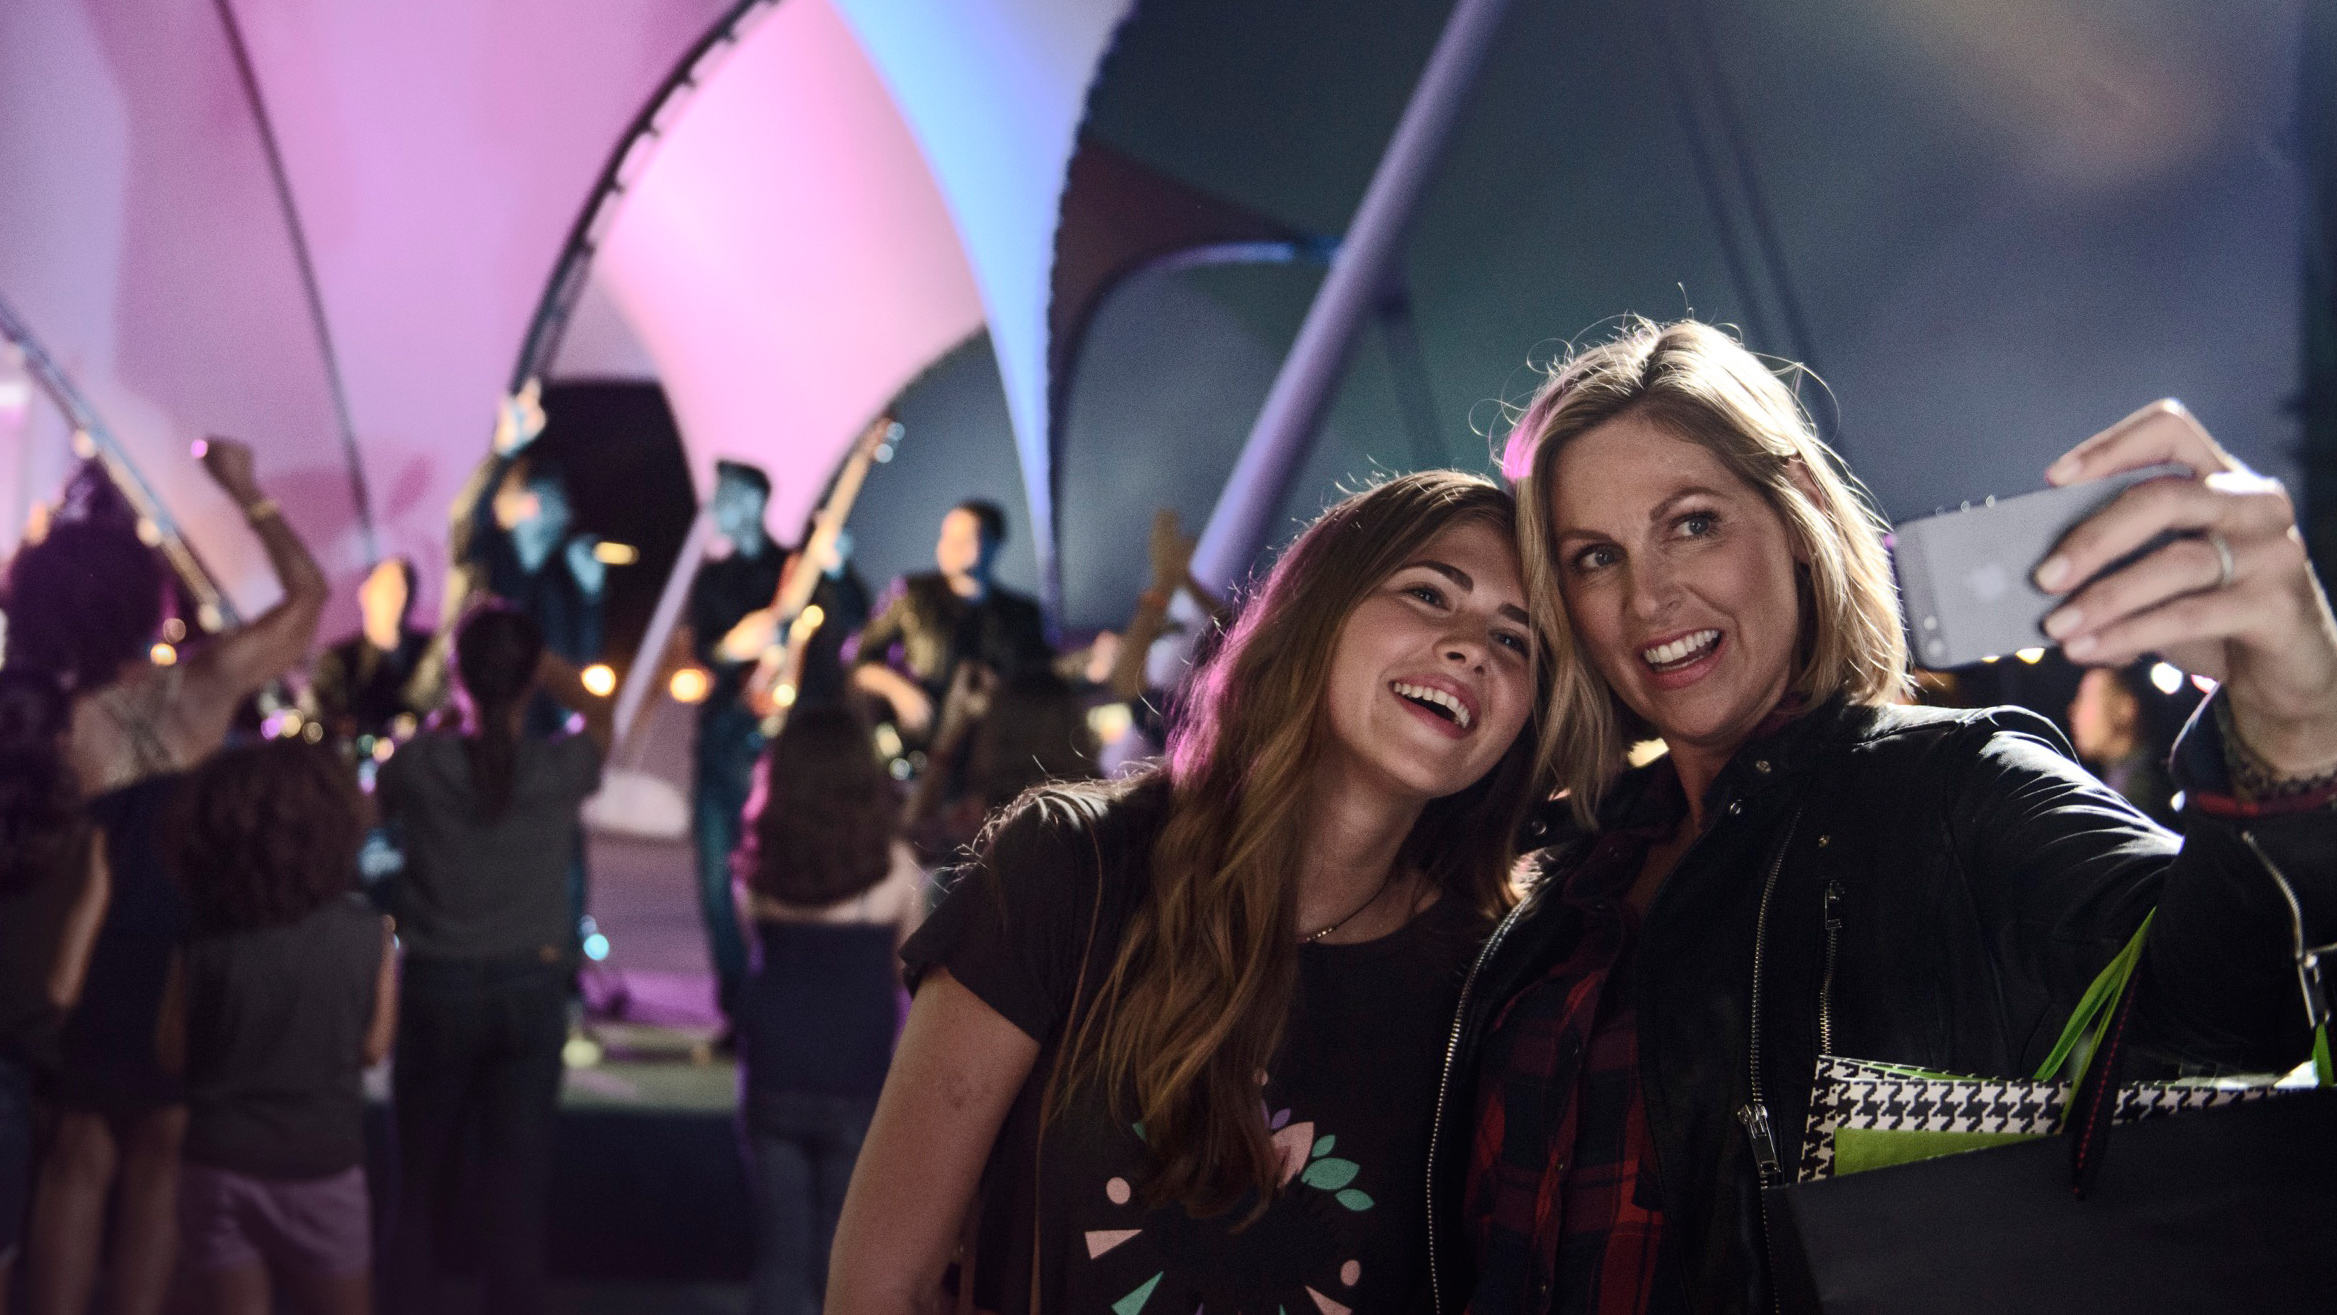 A mother and daughter take a selfie while enjoying an outdoor concert at Disney Springs